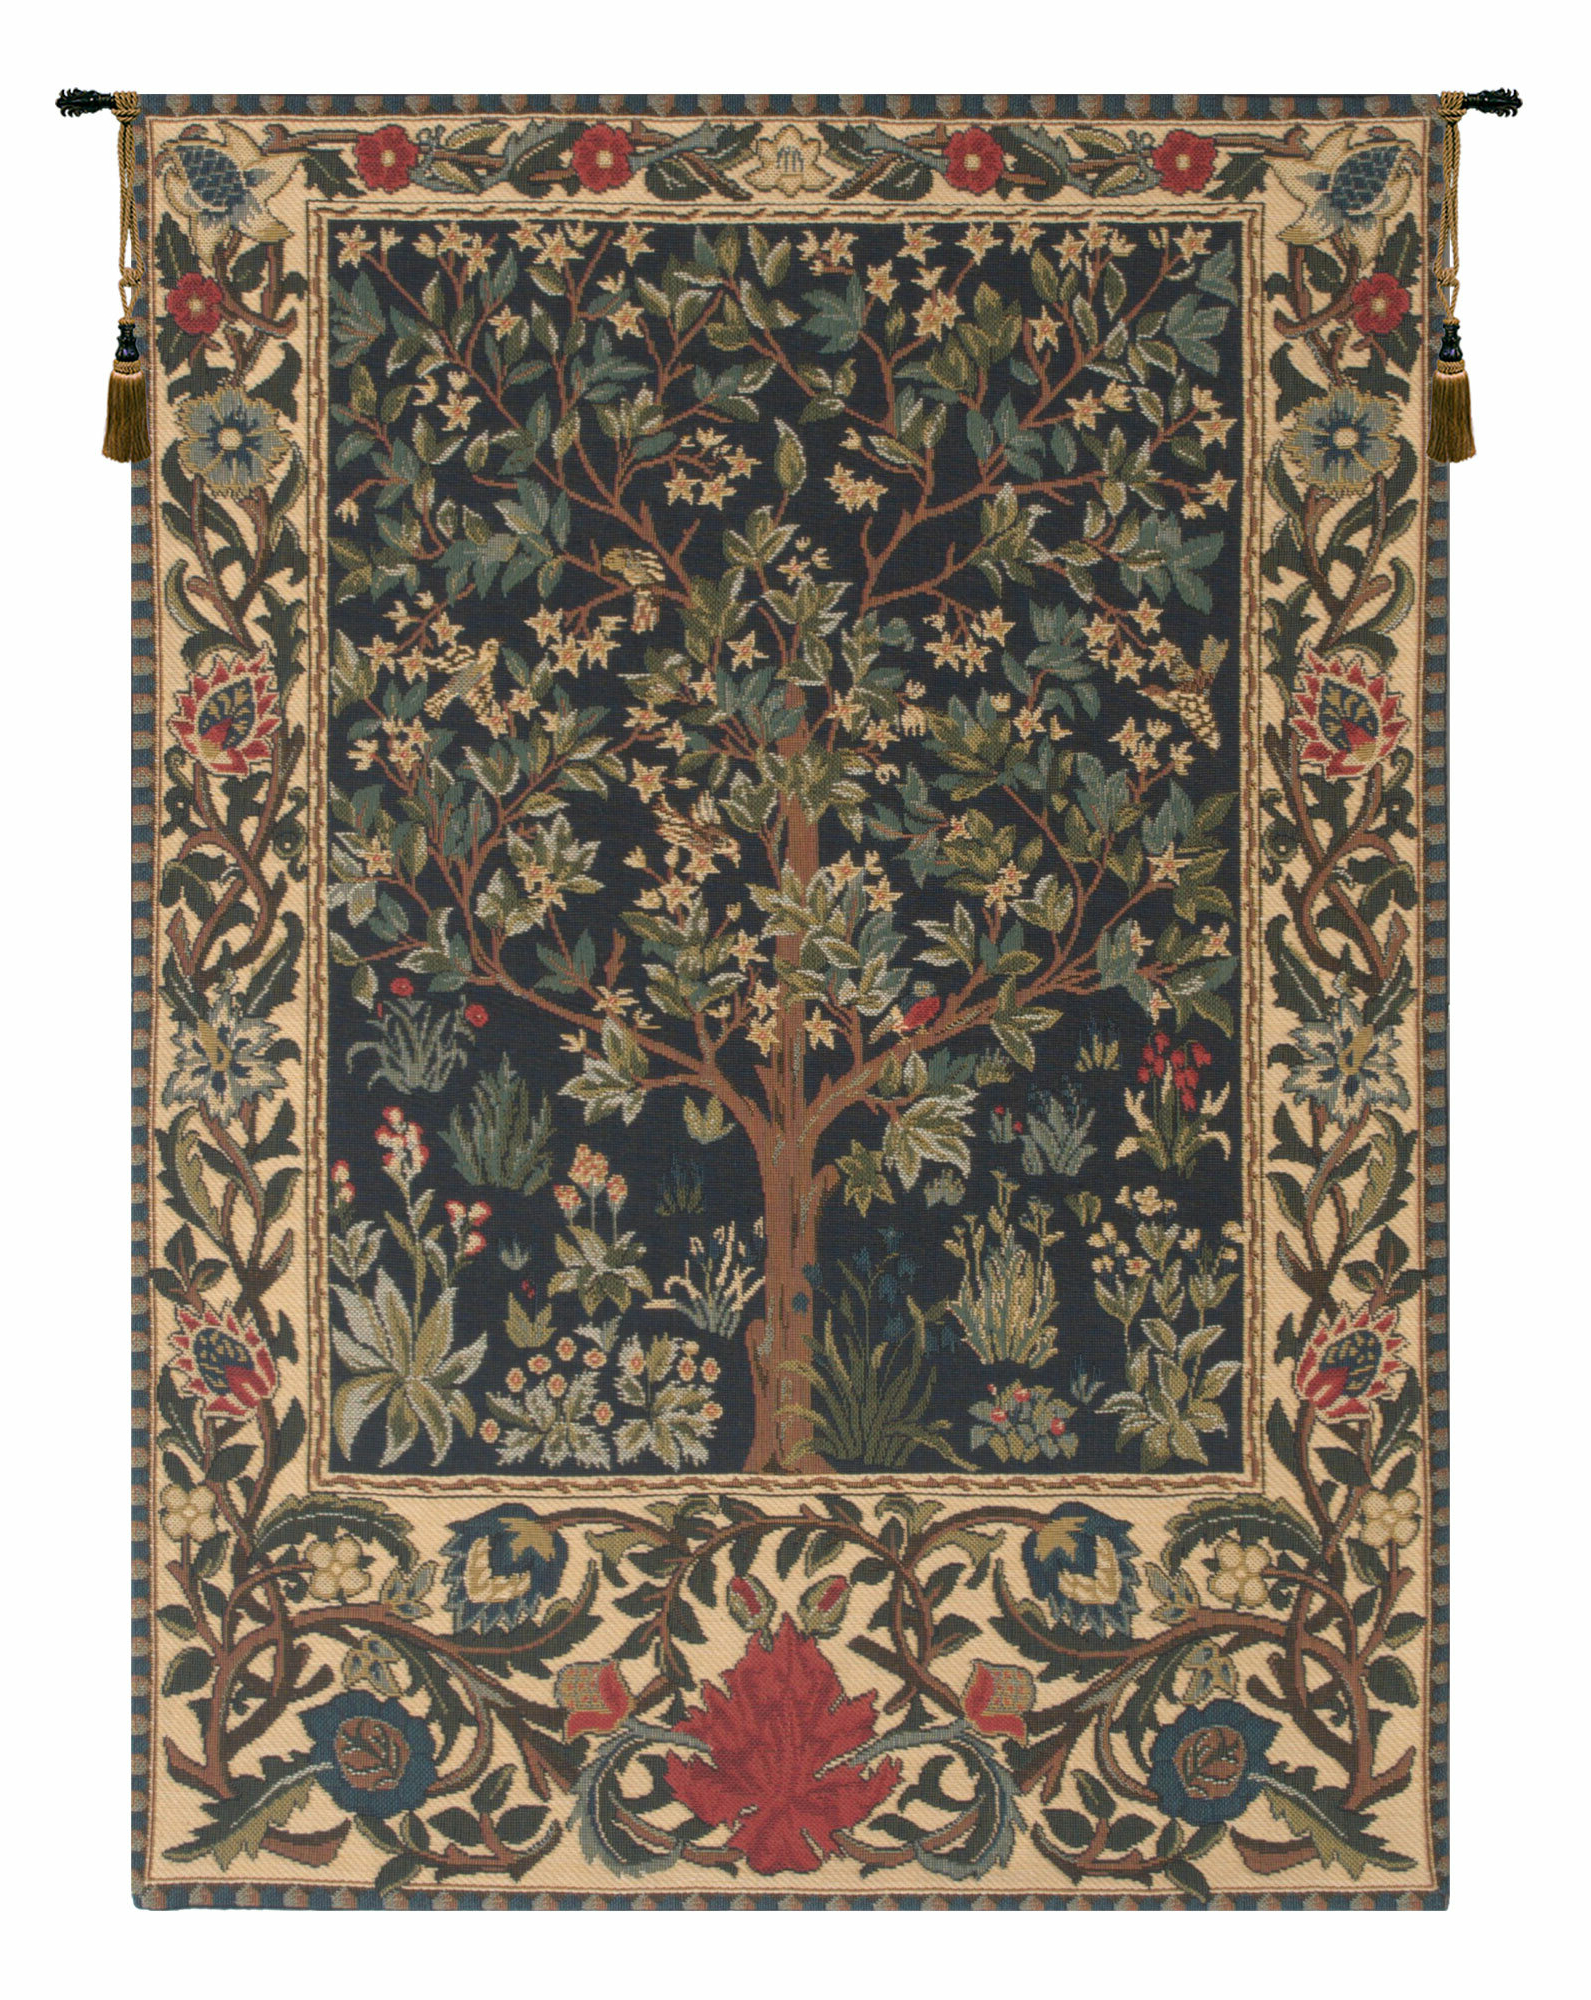 Tree Of Life I European Tapestry Wall Hanging Throughout Popular Blended Fabric Classic French Rococo Woven Tapestries (View 10 of 20)